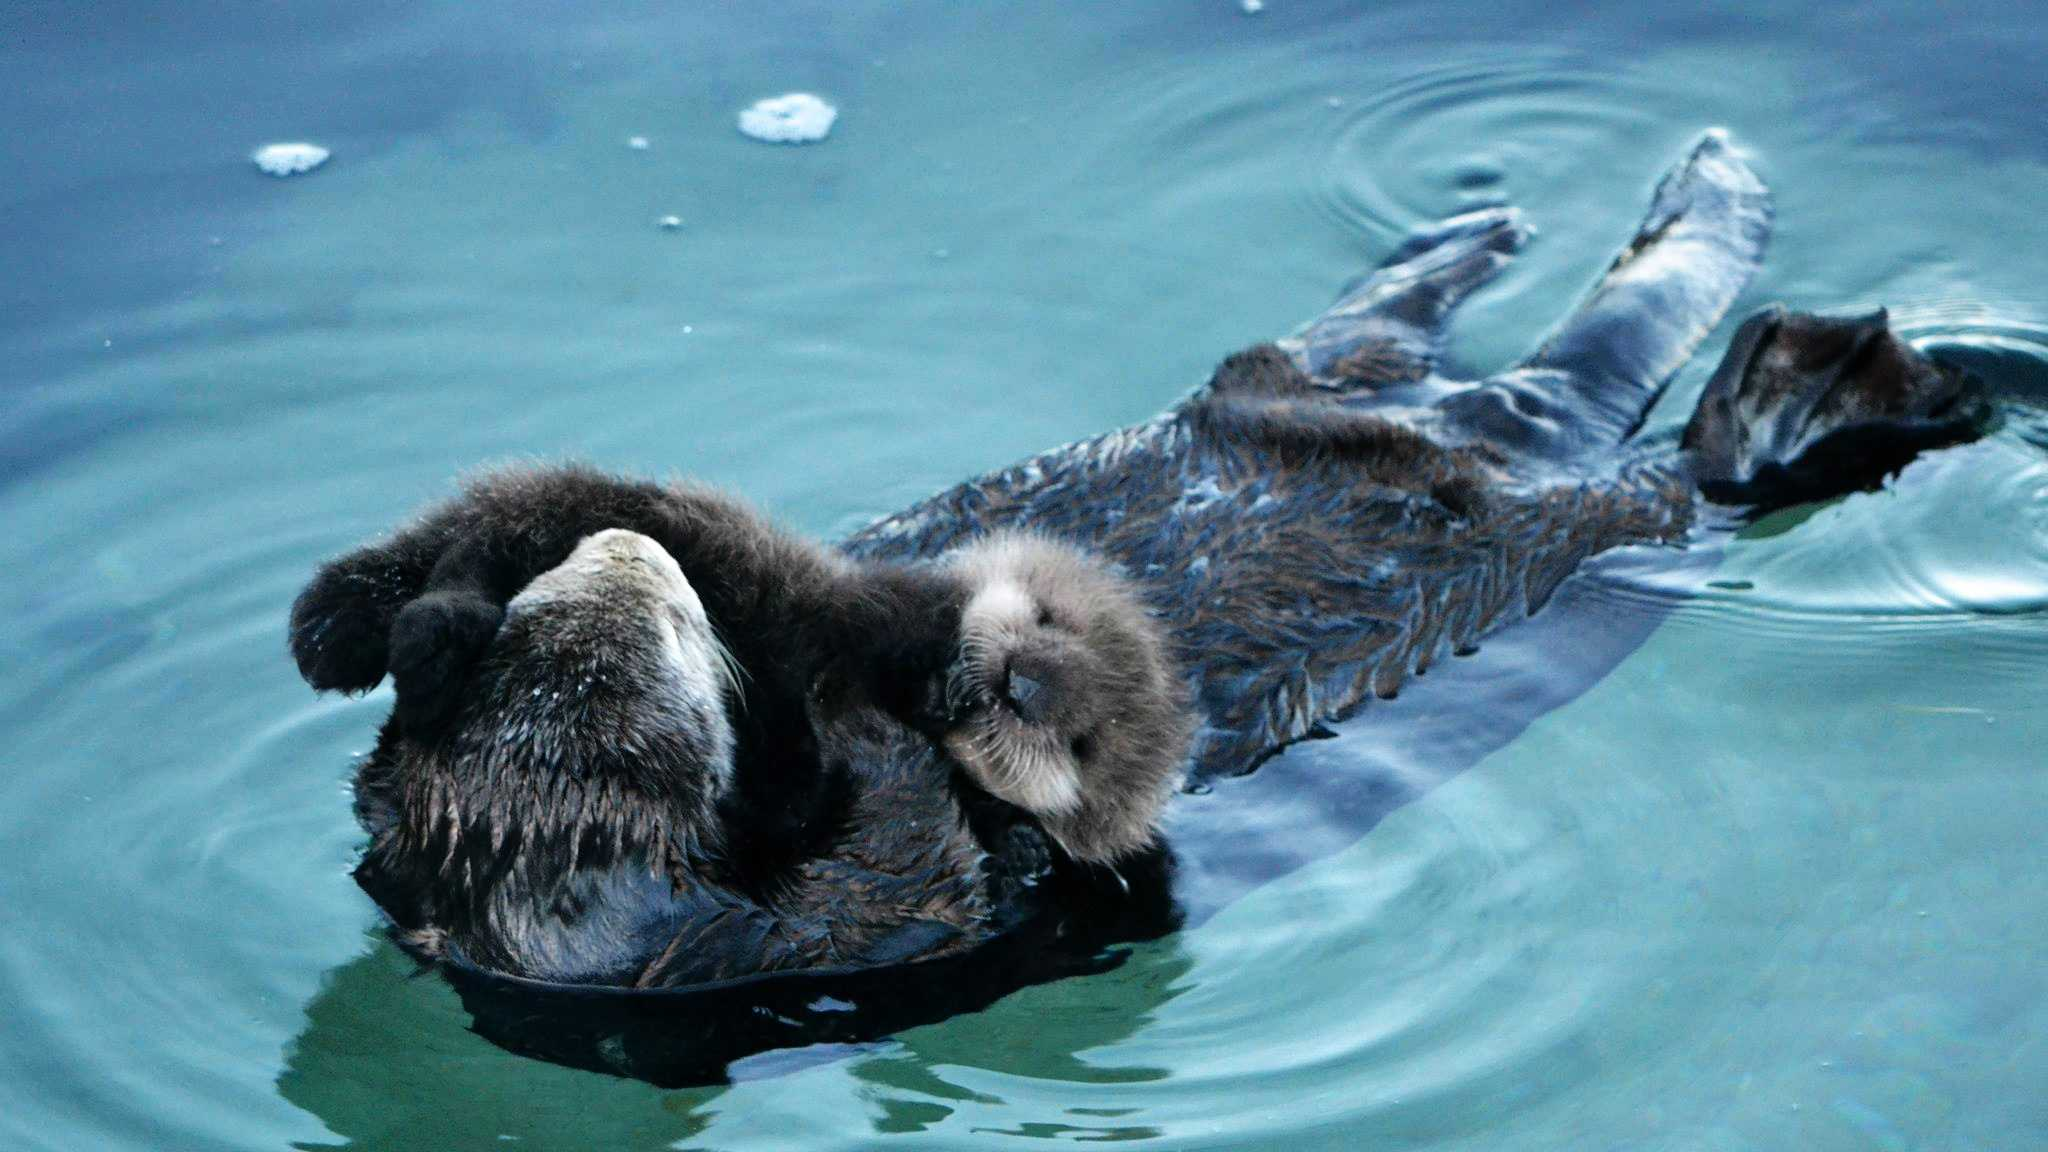 A sea otter mother floats with her new pup just outside the Monterey Bay Aquarium.